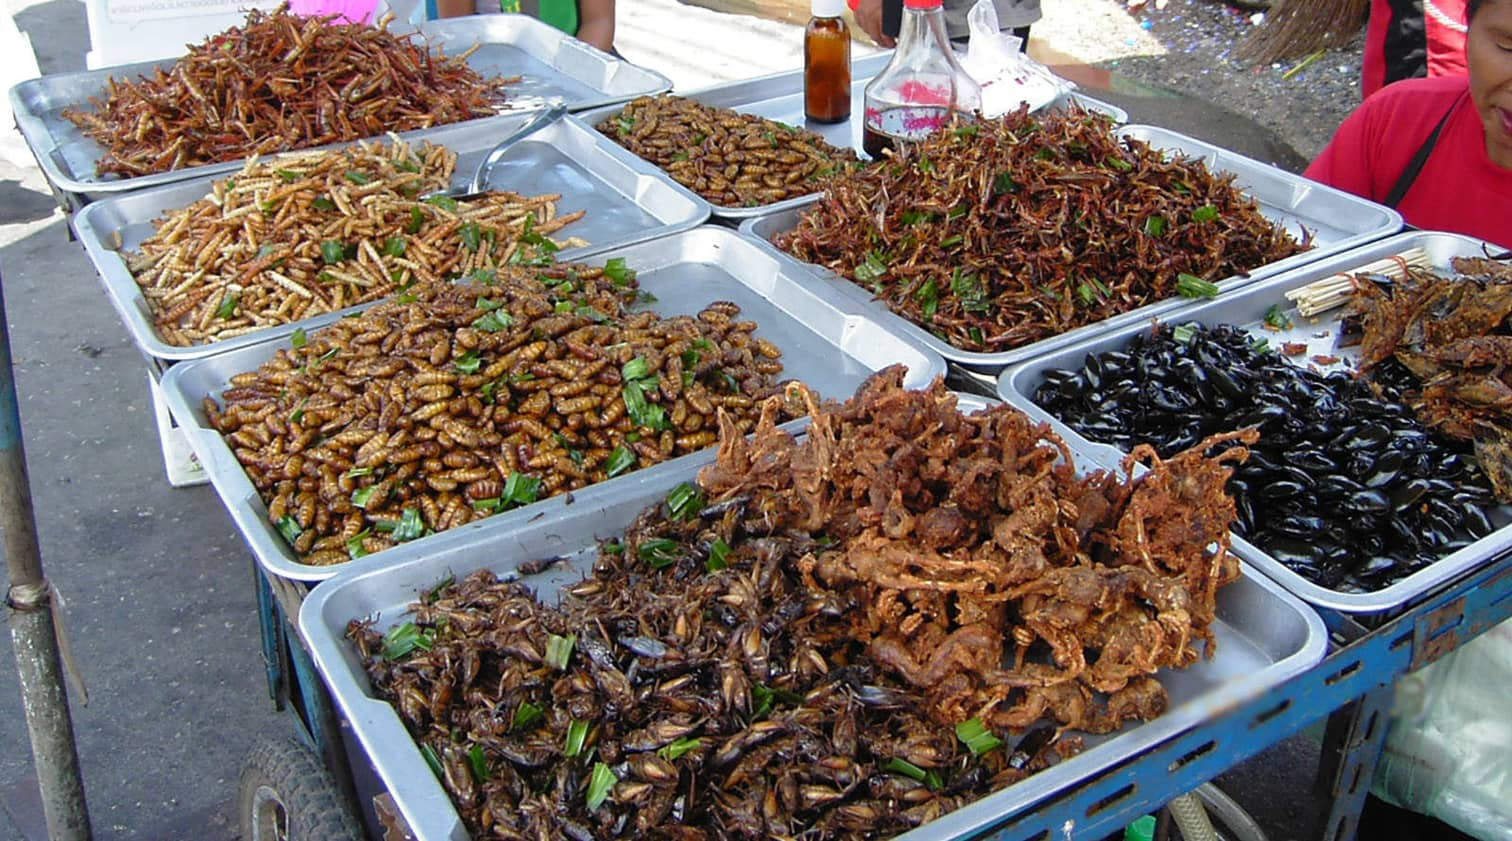 Entomophagy and Intermittent Fasting